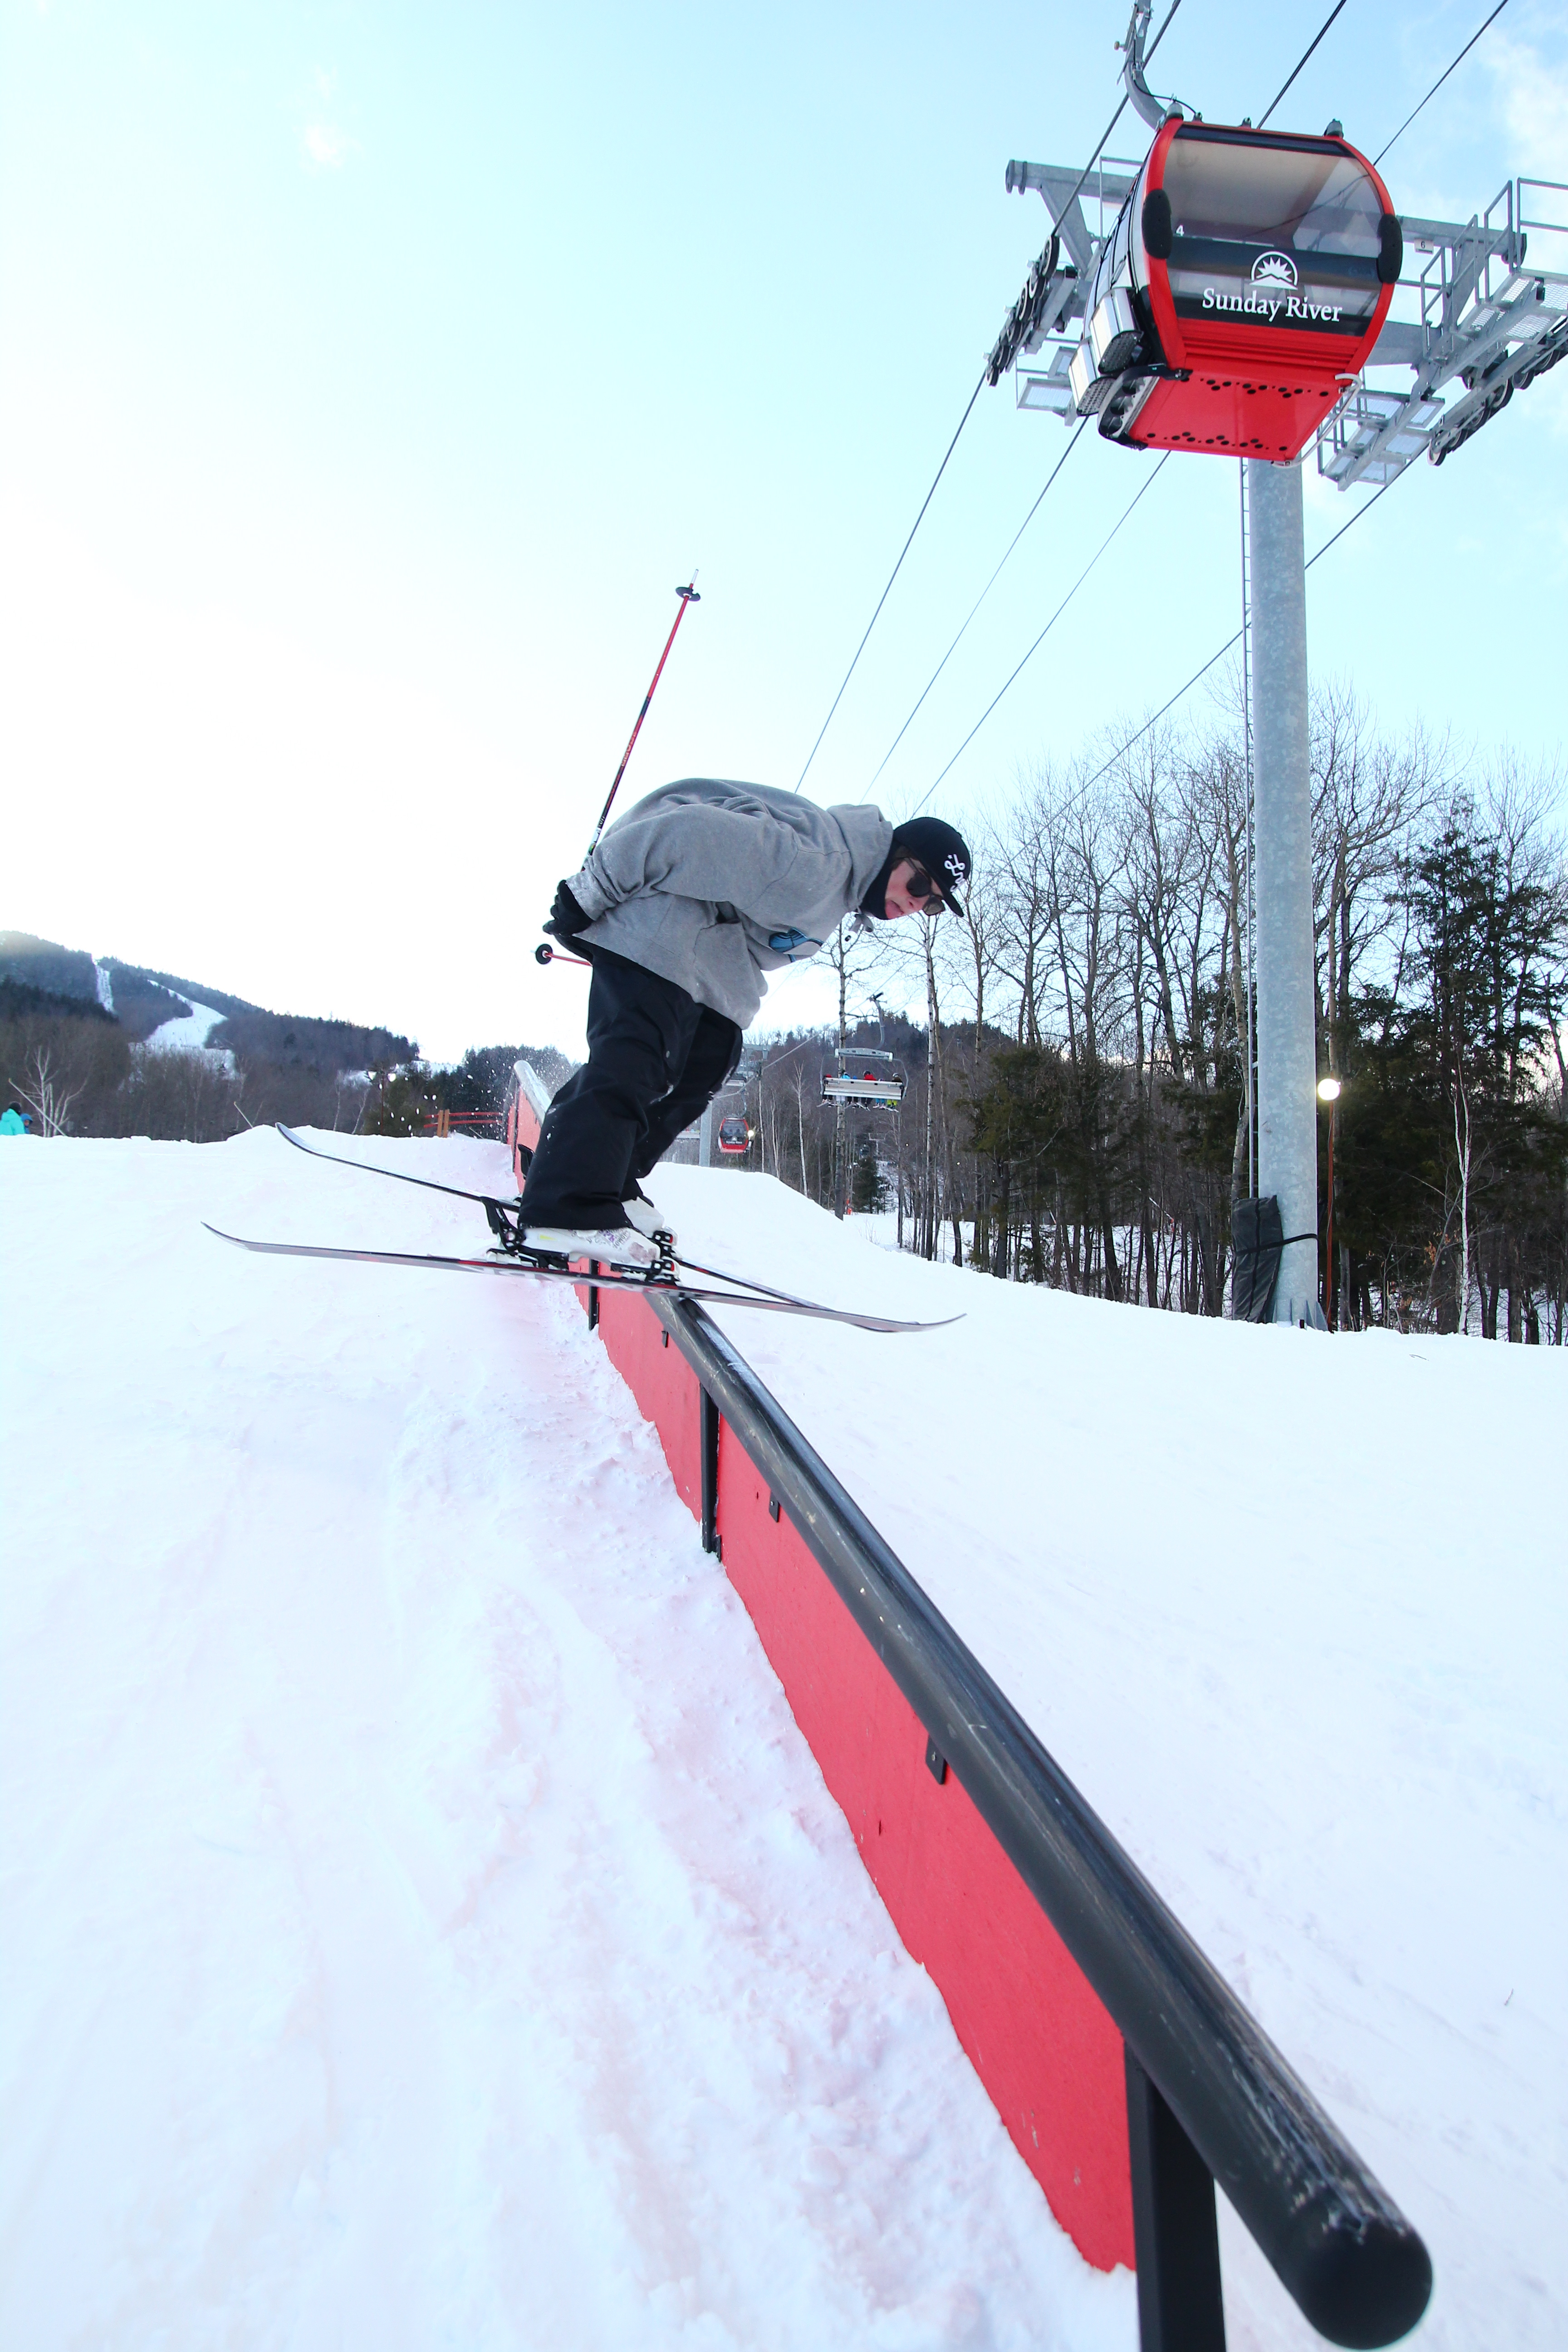 Nose pressing the handrail